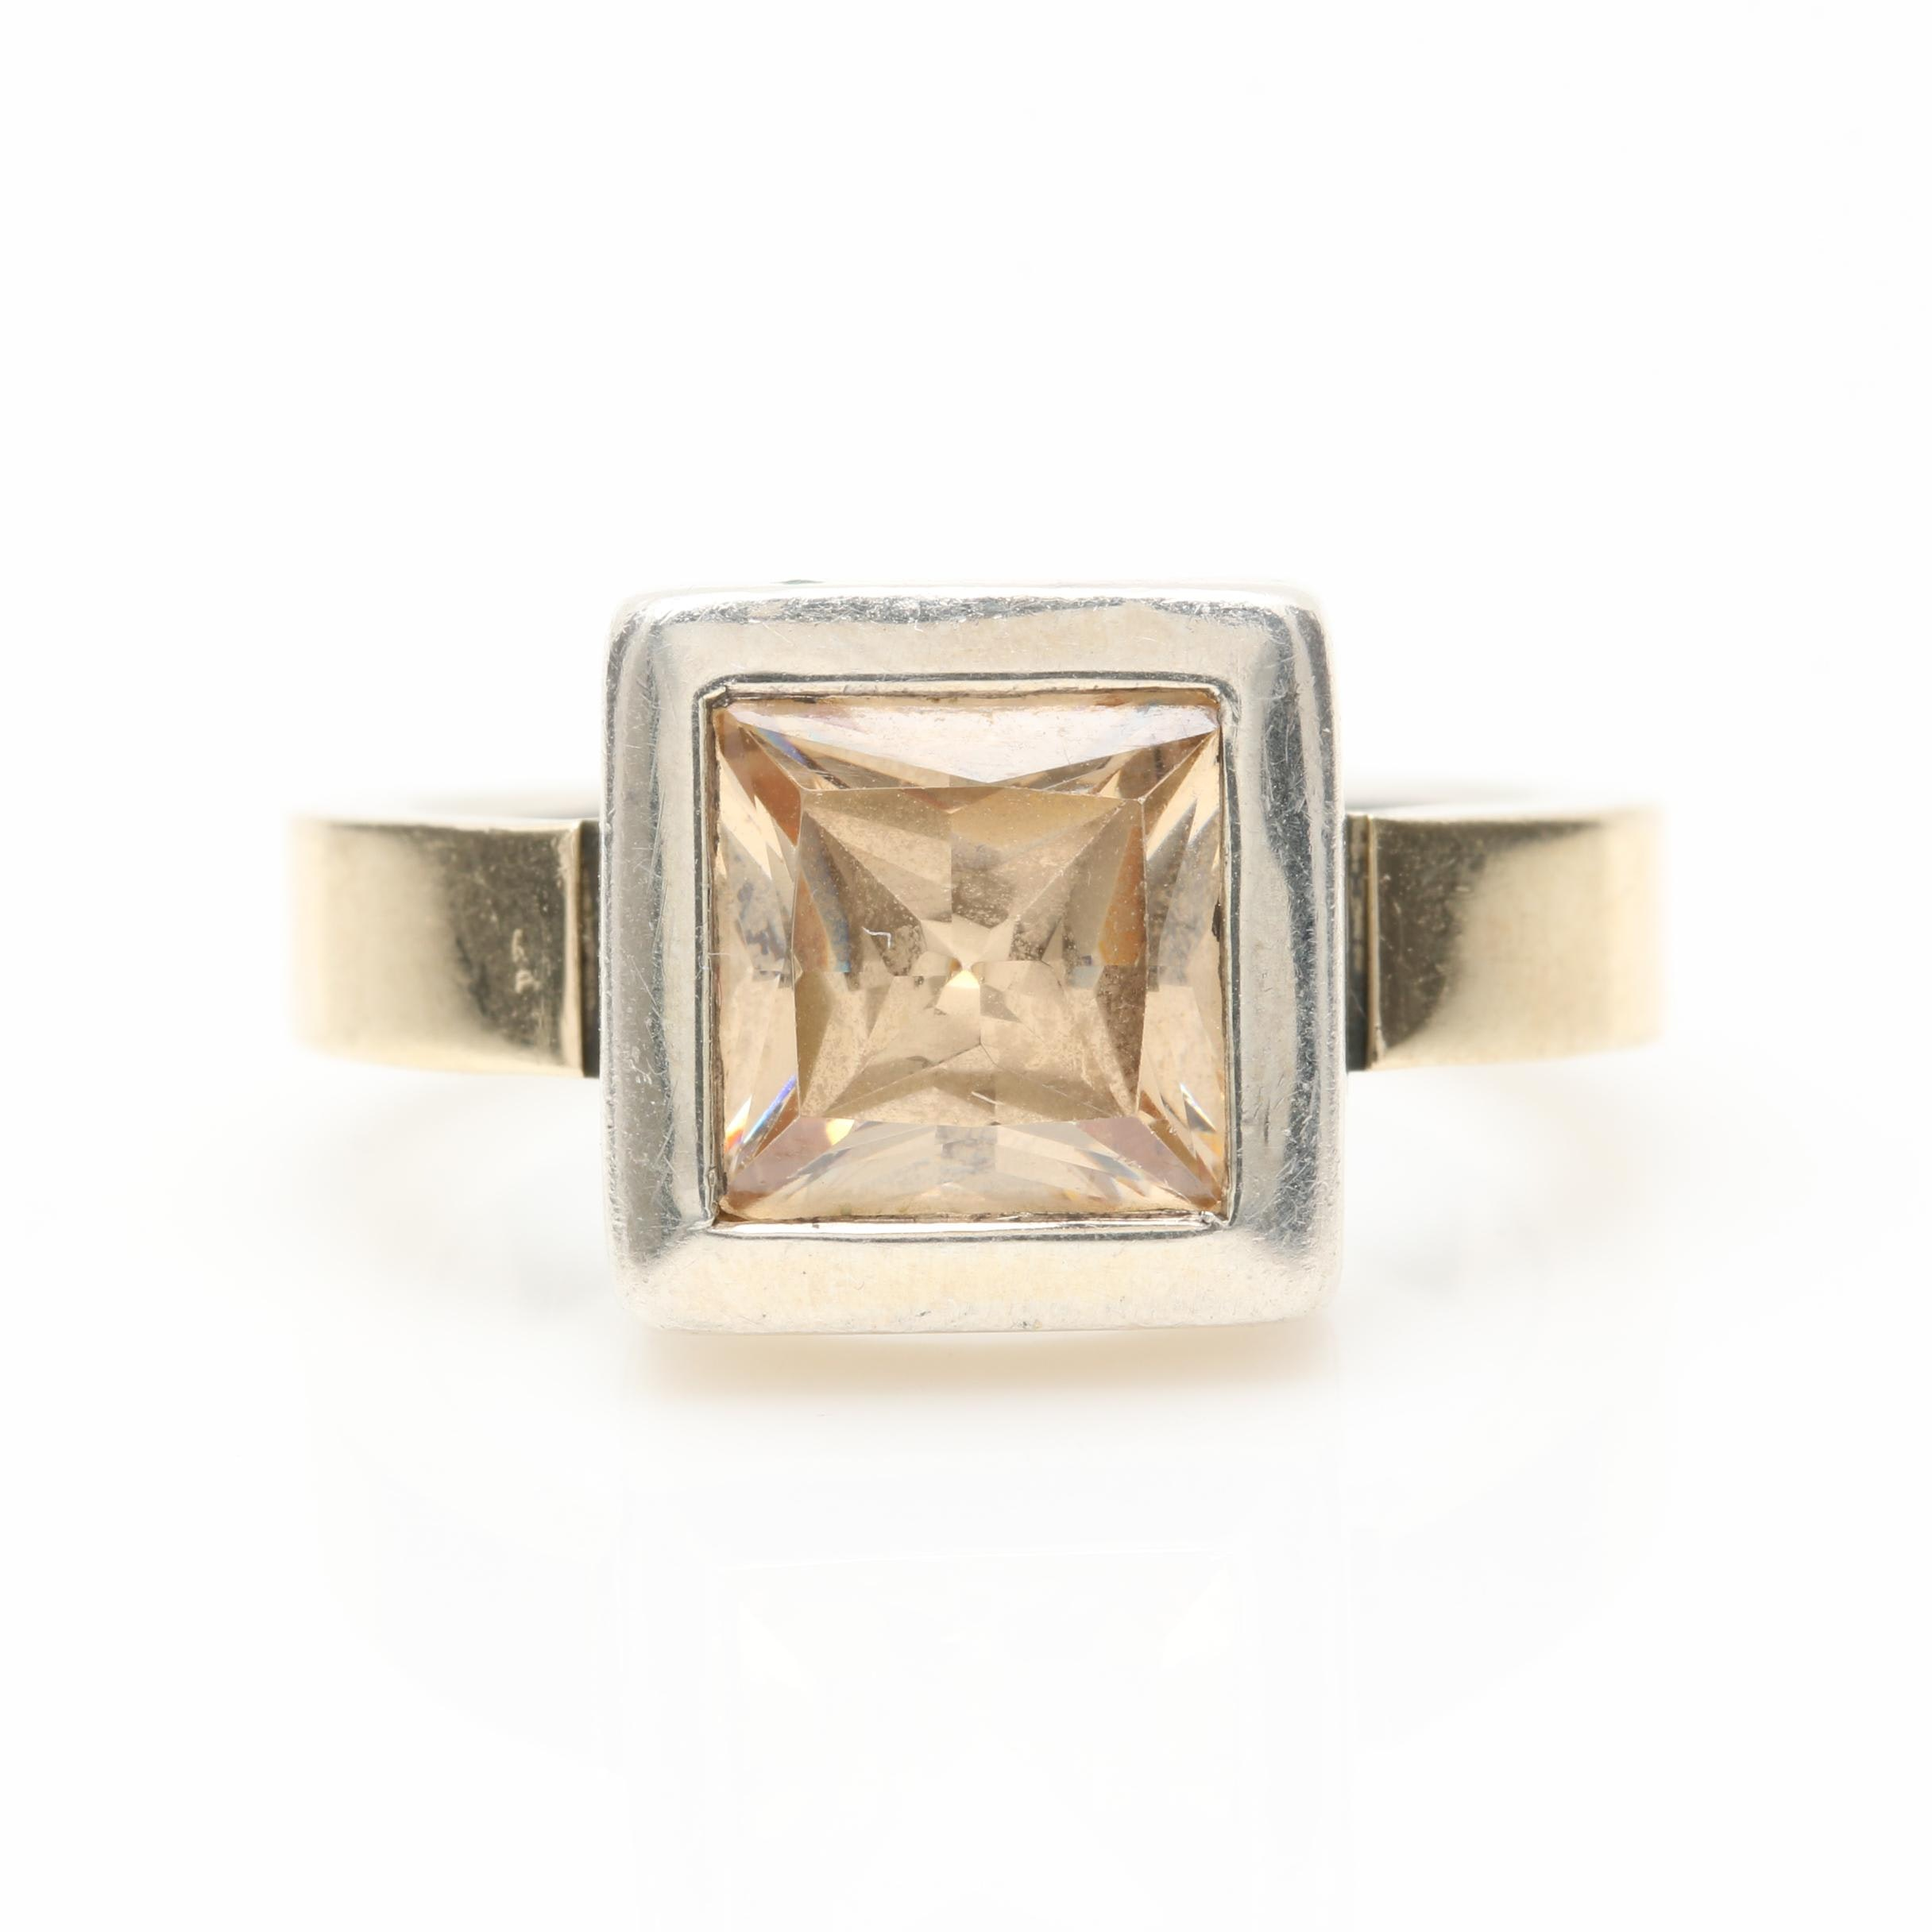 Sterling Silver Cubic Zirconia Ring With 14K Gold Accents